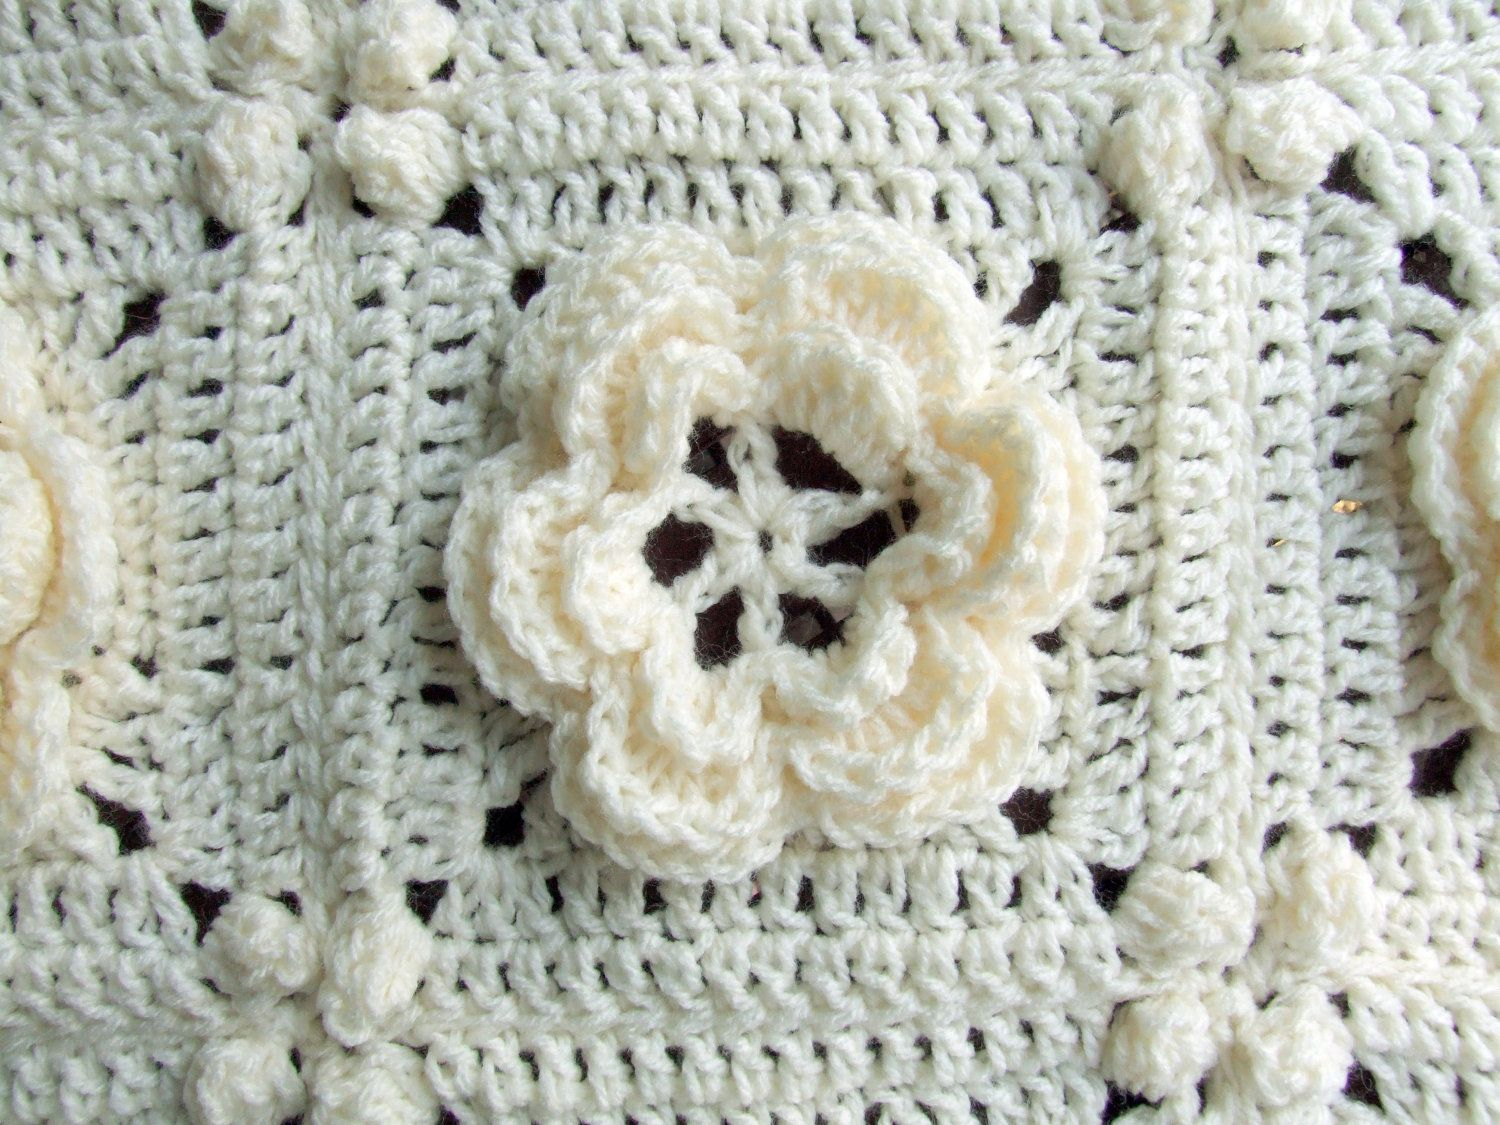 Crochet Pattern - Rosanna - Granny Square / Afghan Block - Irish ...